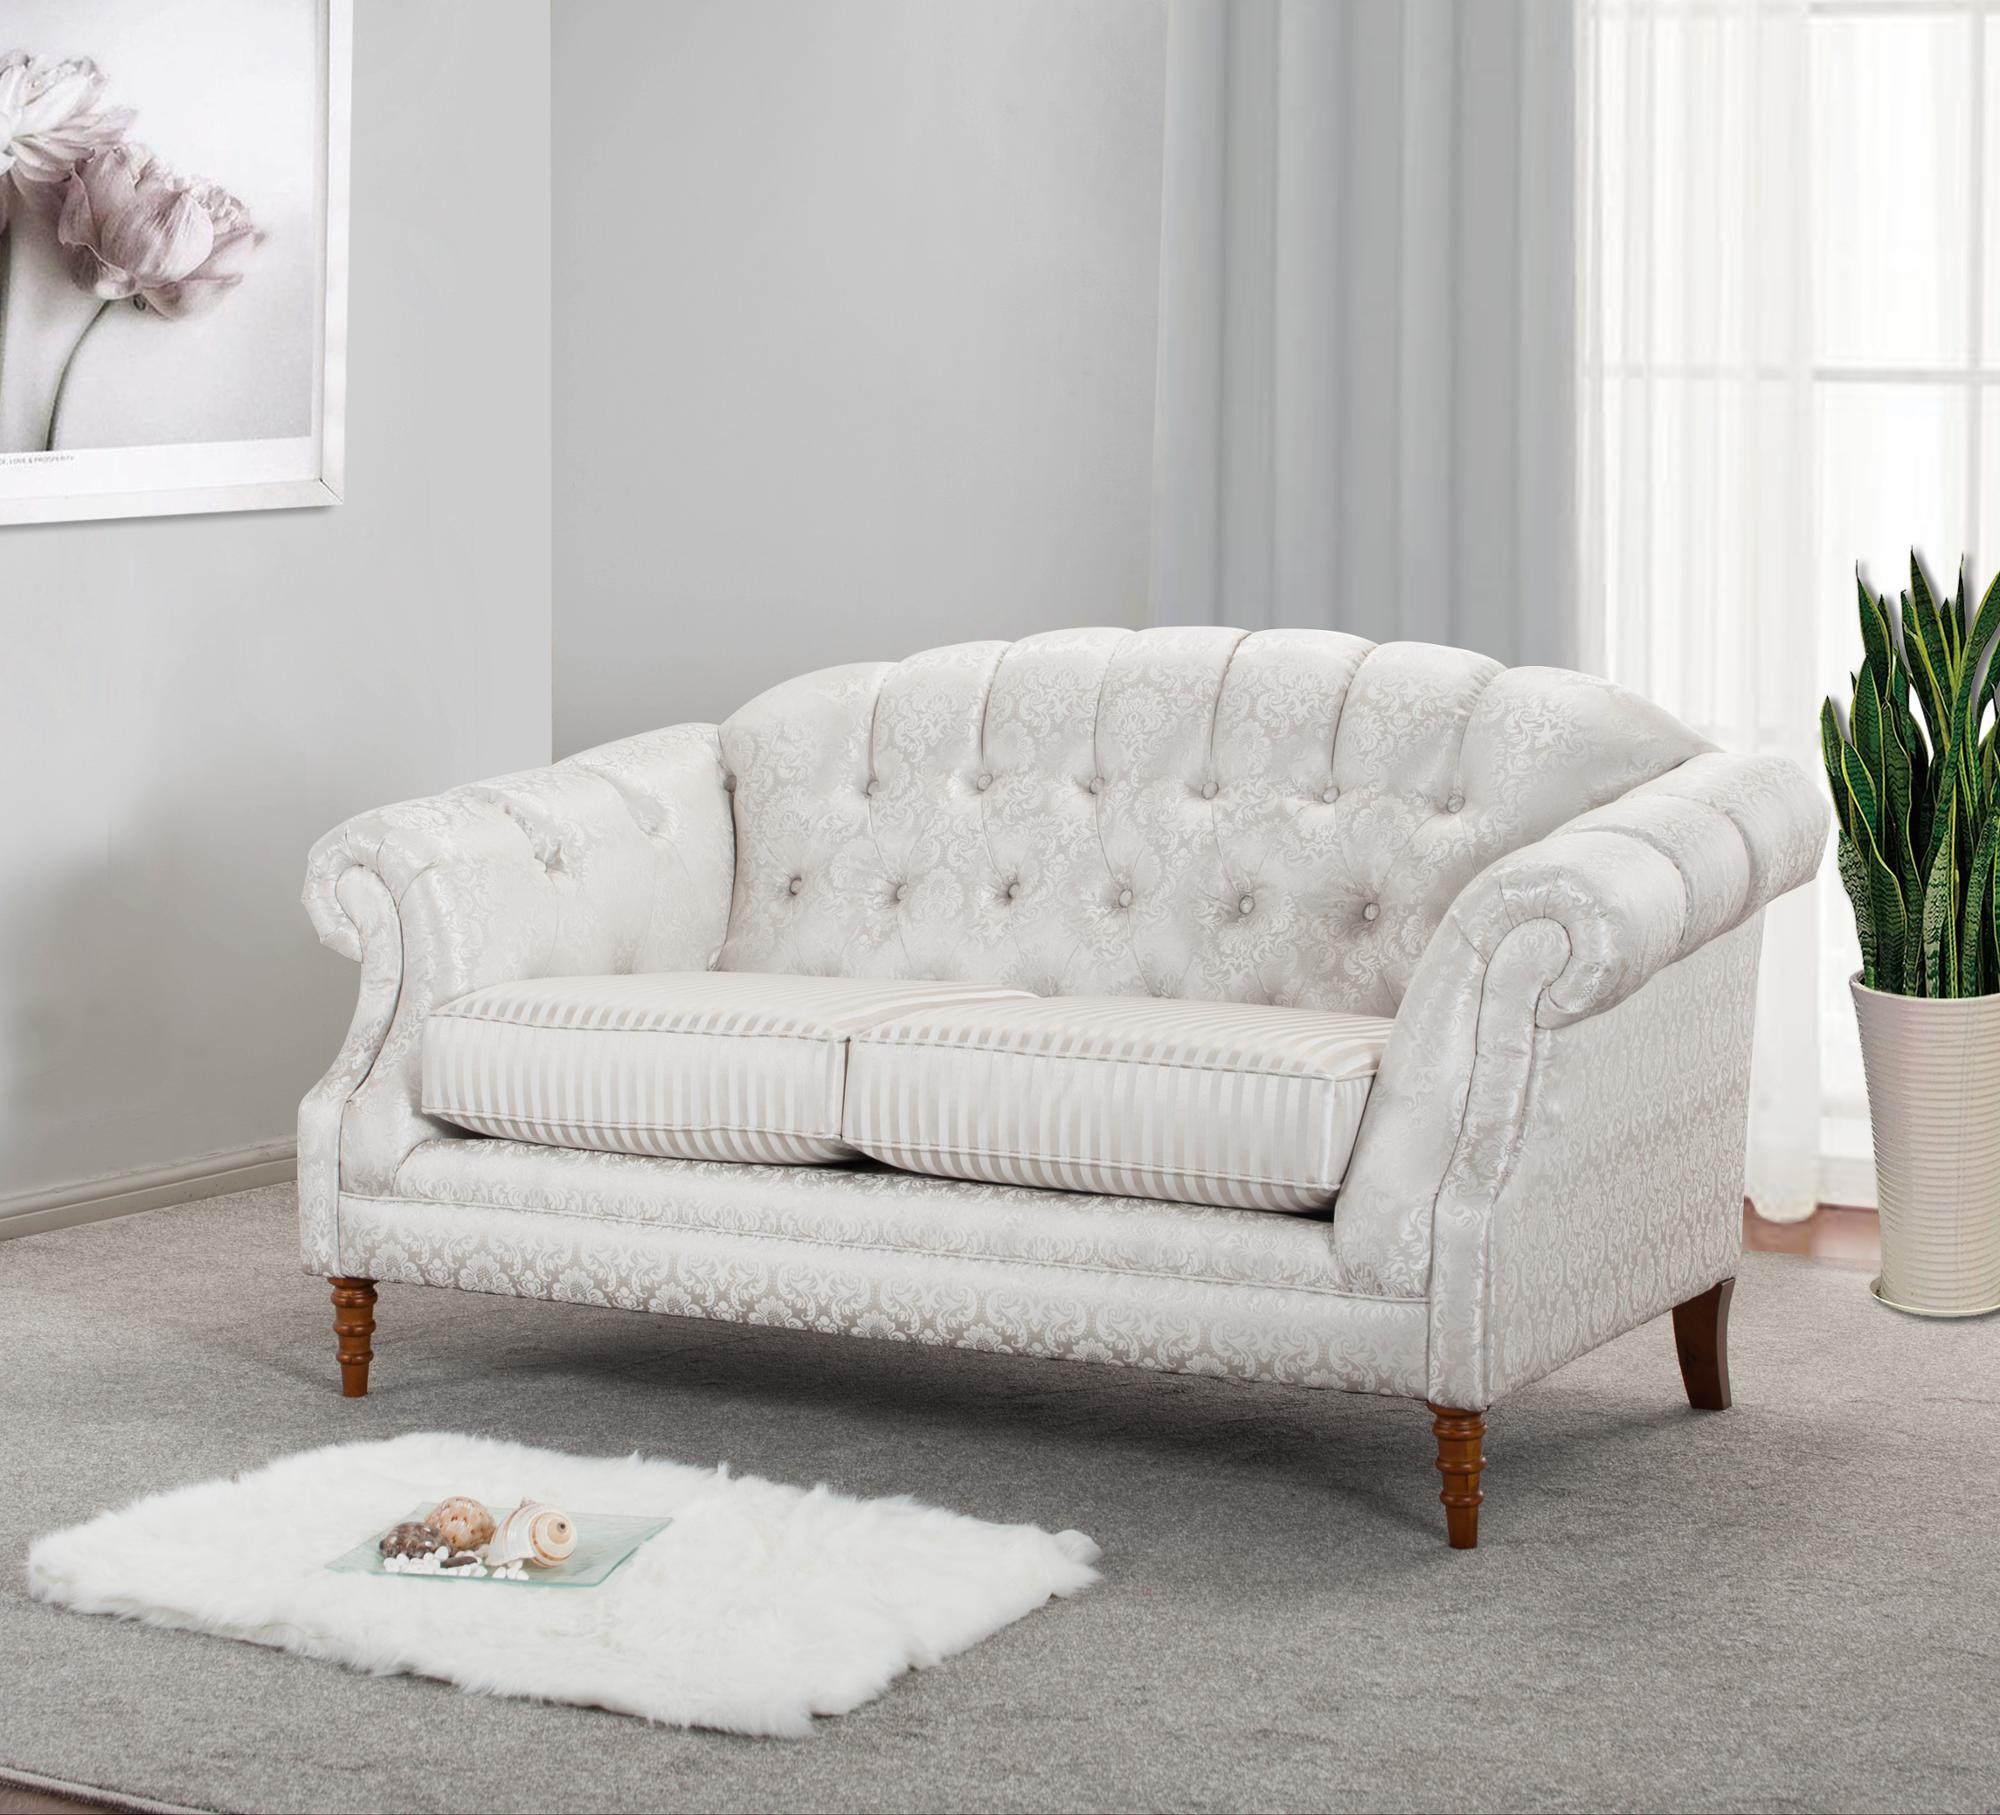 Tufted Button,Traditional,Loveseat,2-seater Sofa,Living Room Sofa,Fabric  Cover,Style#2528 - Buy Traditional 2-seater Living Room Sofa,New Arrival ...